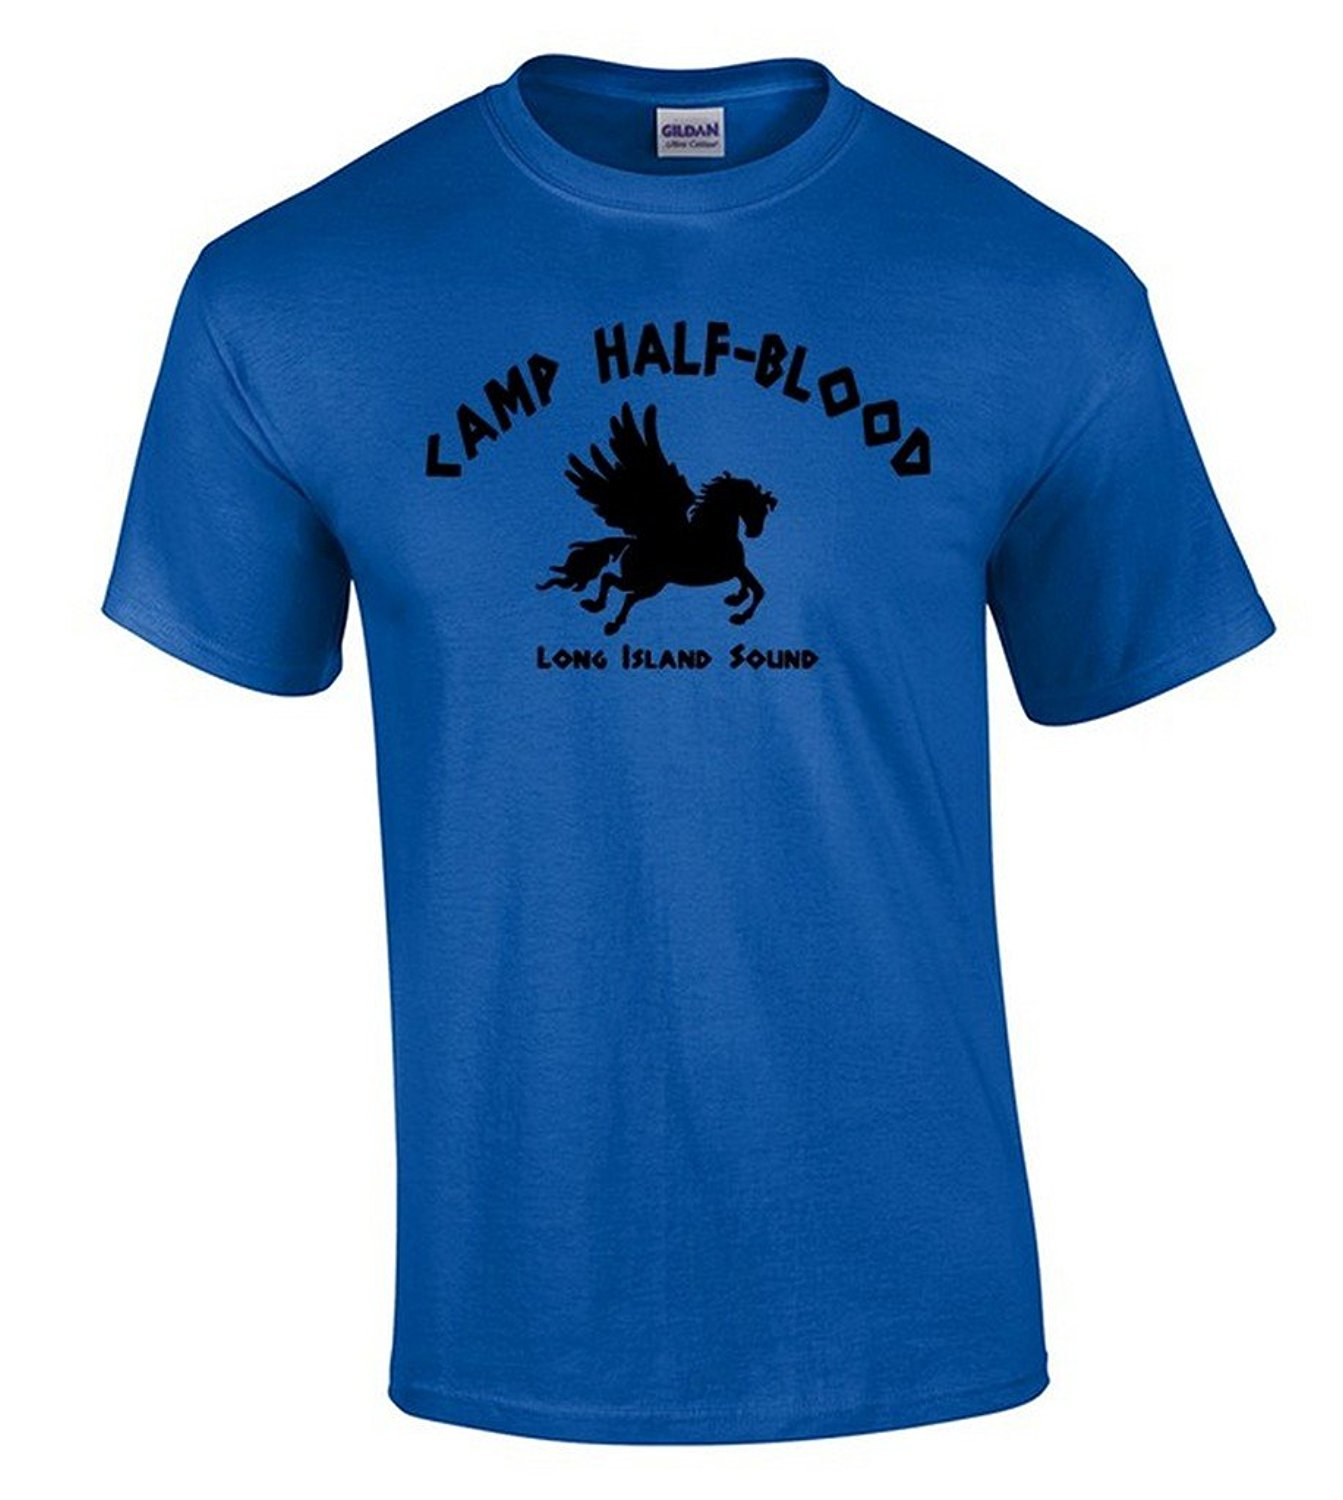 New Style Company Tee Shirts Camp Half Blood T-shirt Long Island Sound Greek Demigod Shirt 100% Cotton Jersey Security T Shirts(China (Mainland))